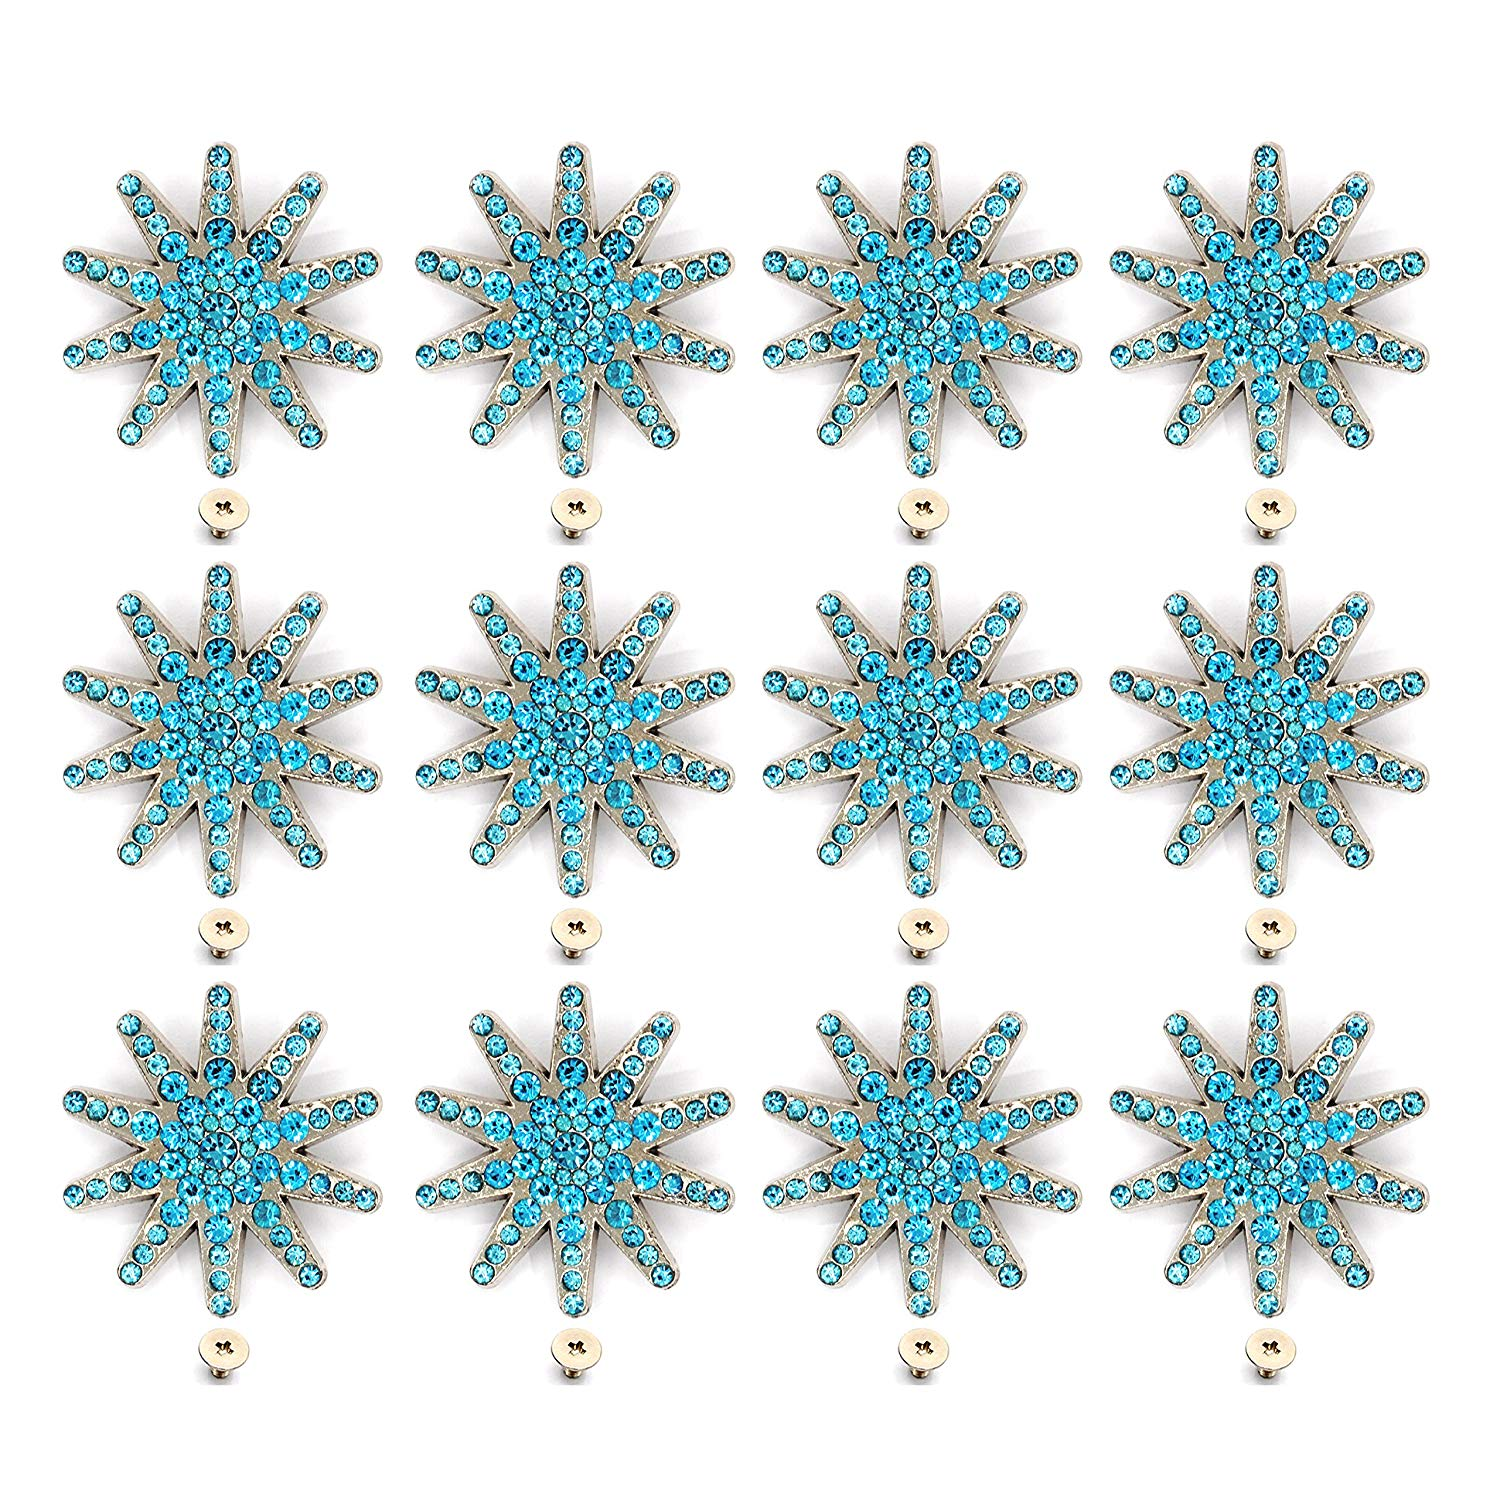 6 pc crystal bling saddle concho set  barrel racer aqua blue  SALE